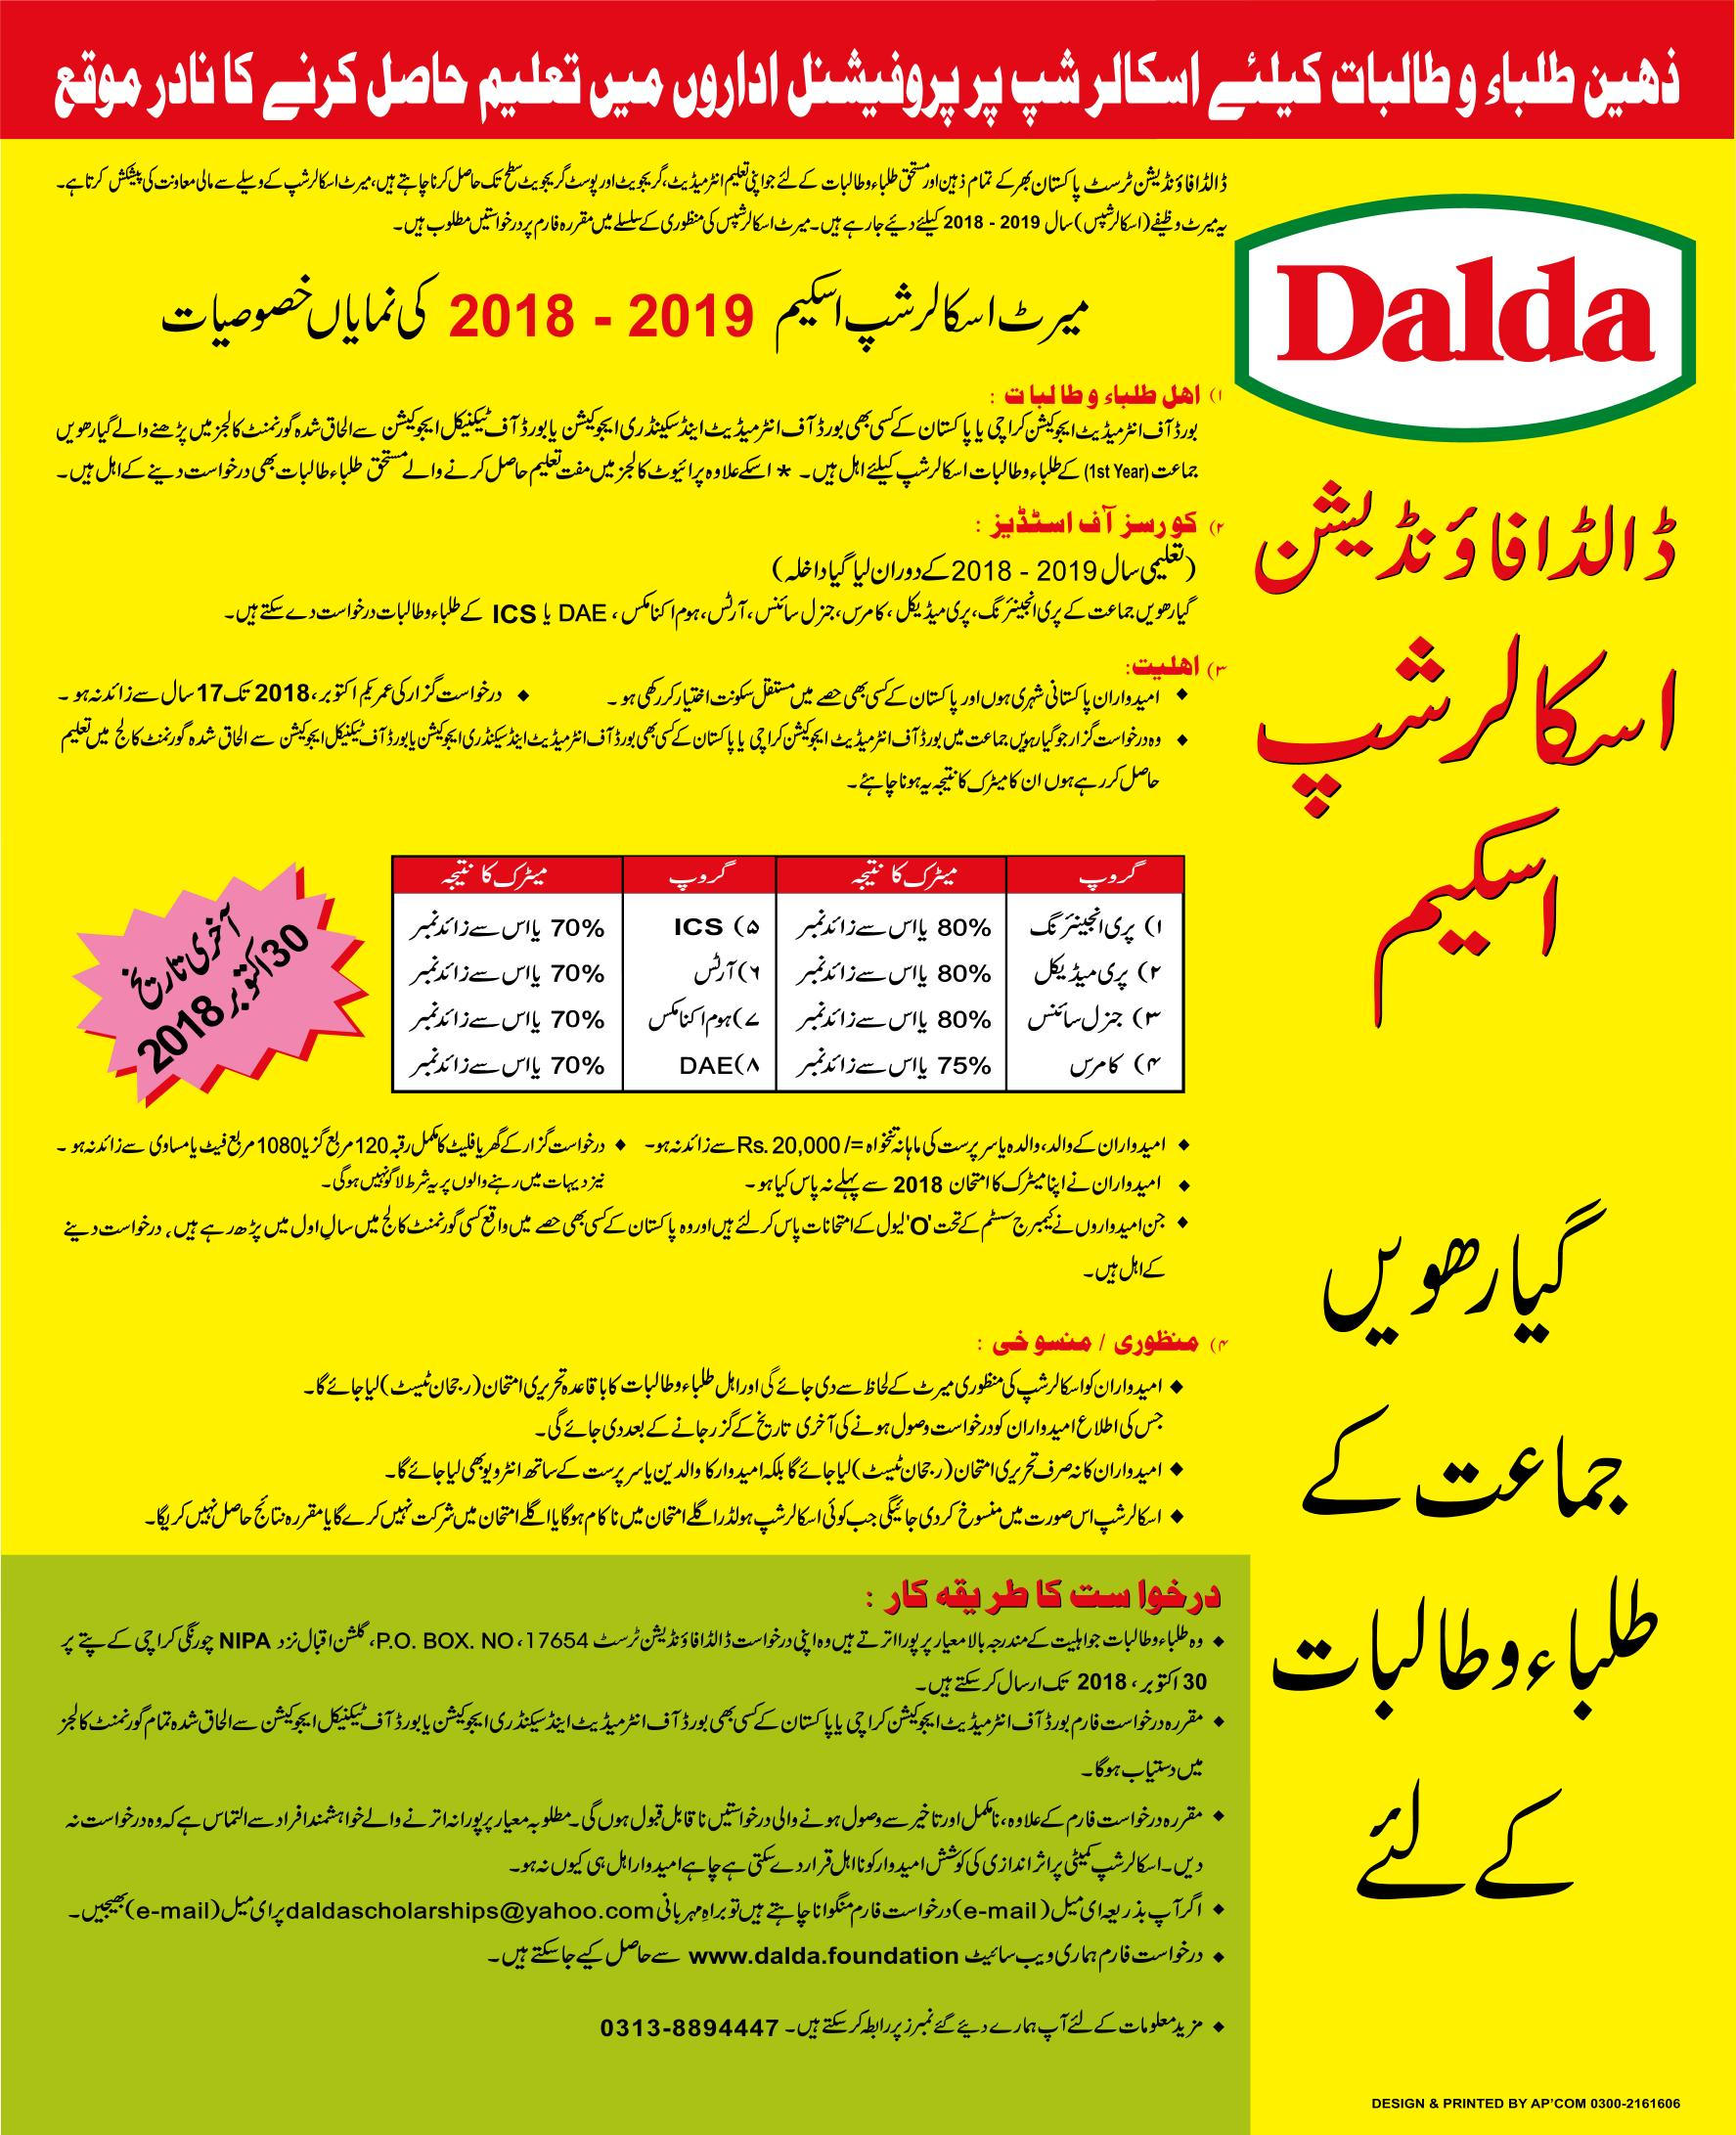 Dalda Scholarship 2018 Application Form Download